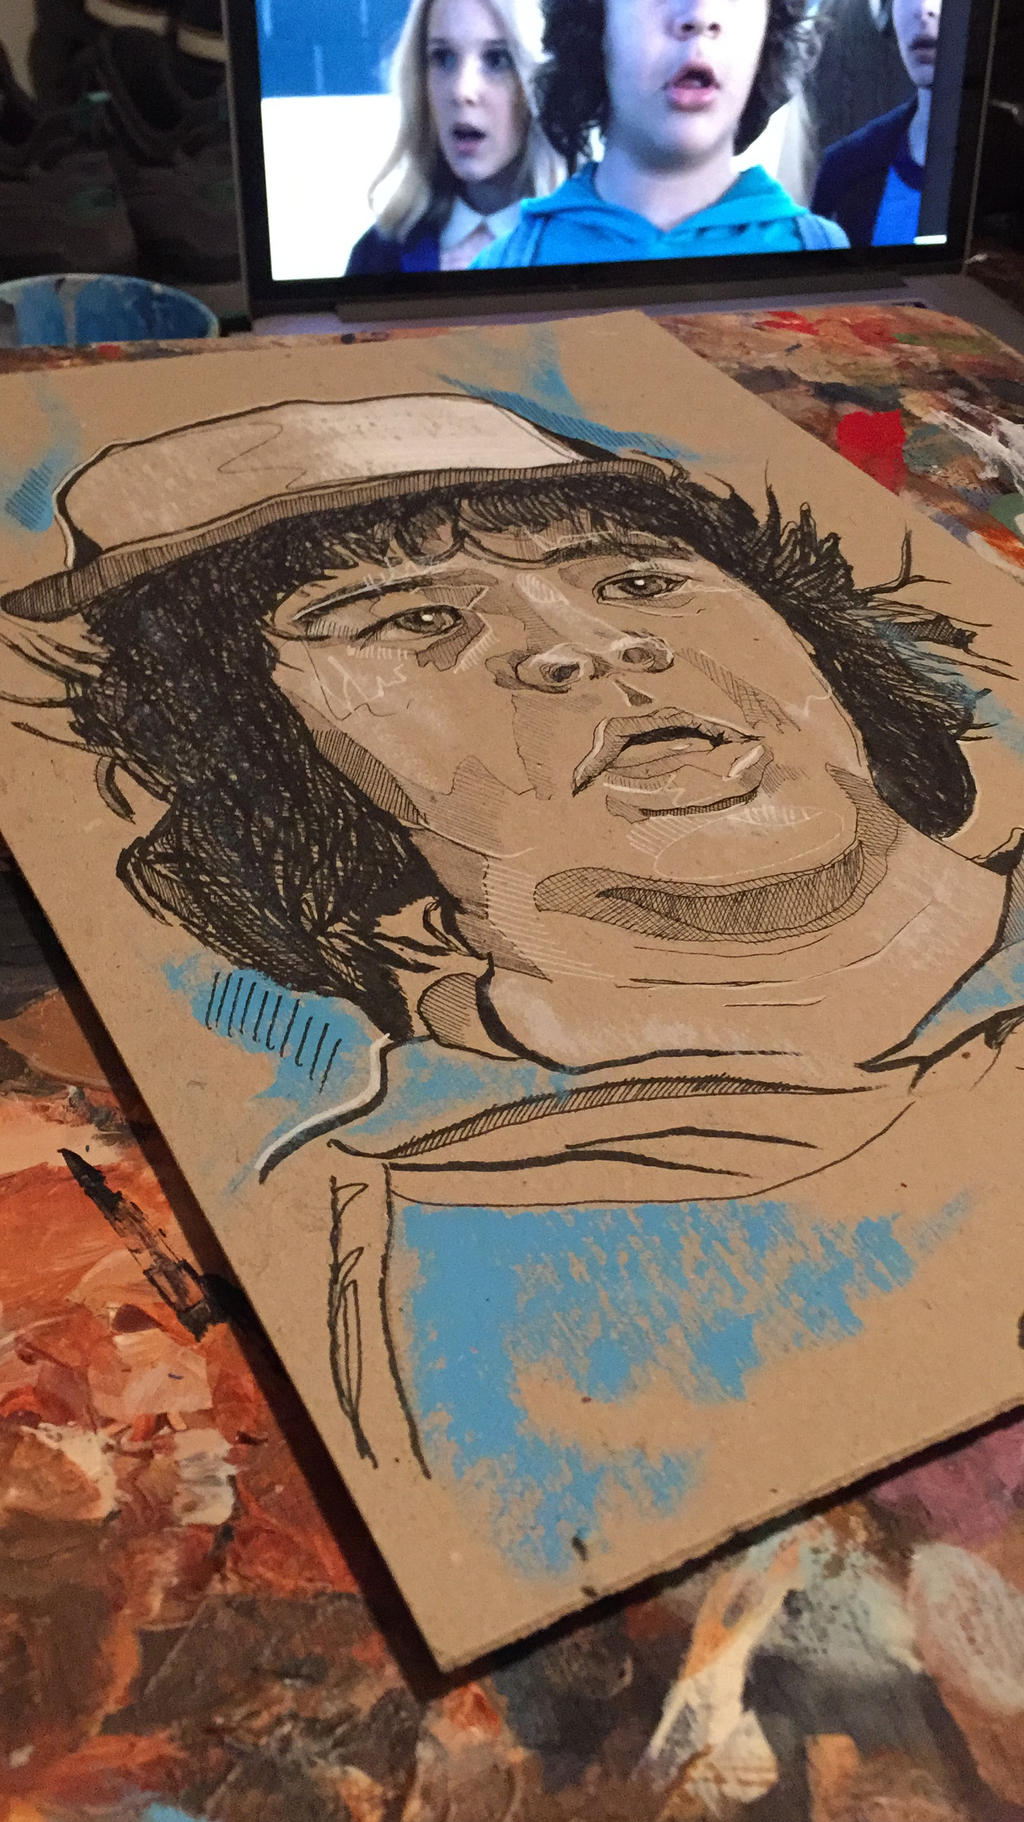 Dustin - Stranger Things by artbydavidc